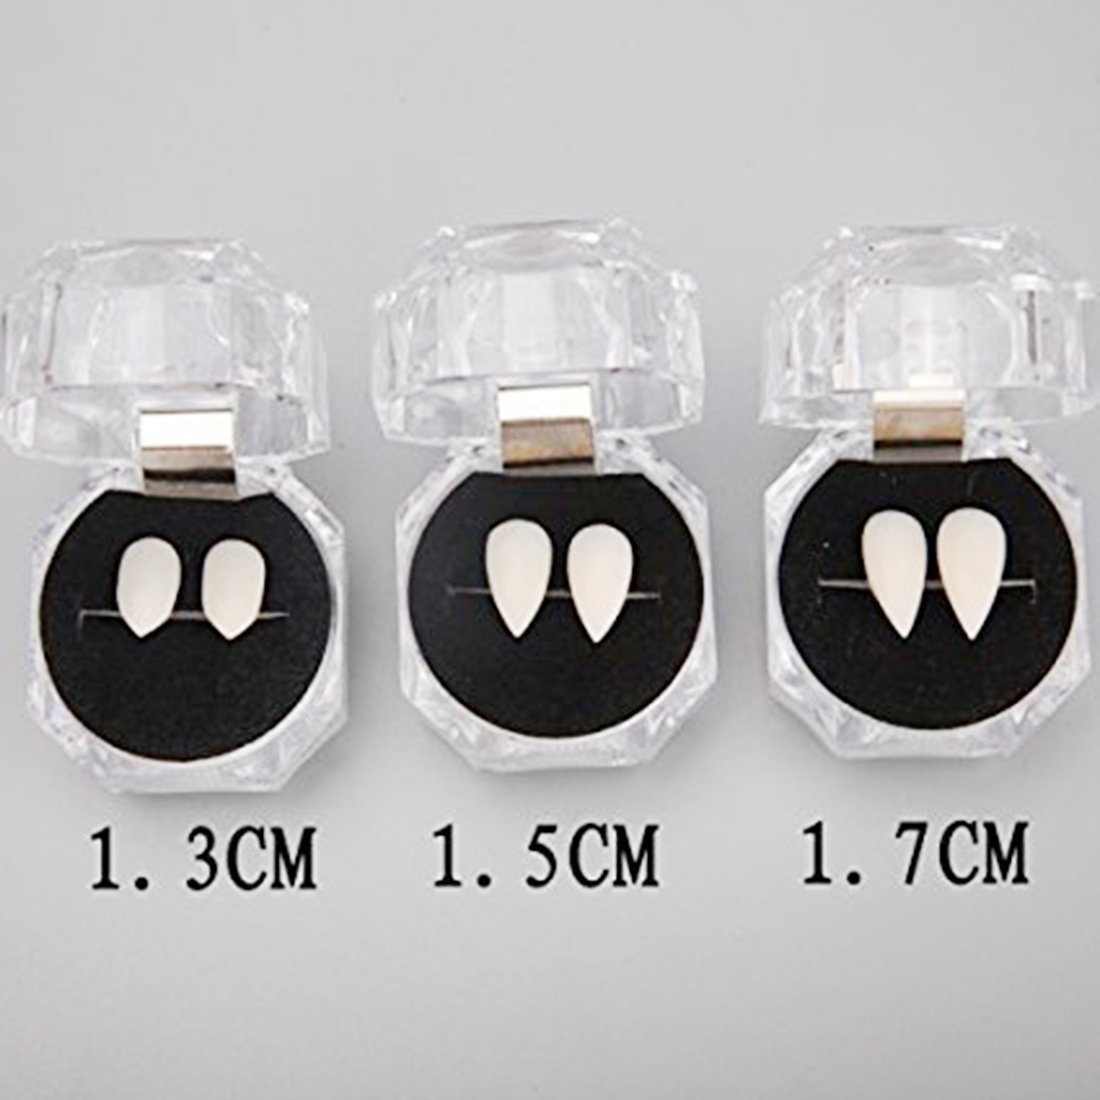 NIGHT-GRING Halloween Party Cosplay Prop Decoration Vampire Tooth Horror False Teeth 6 pieces zy-Halloween Tooth